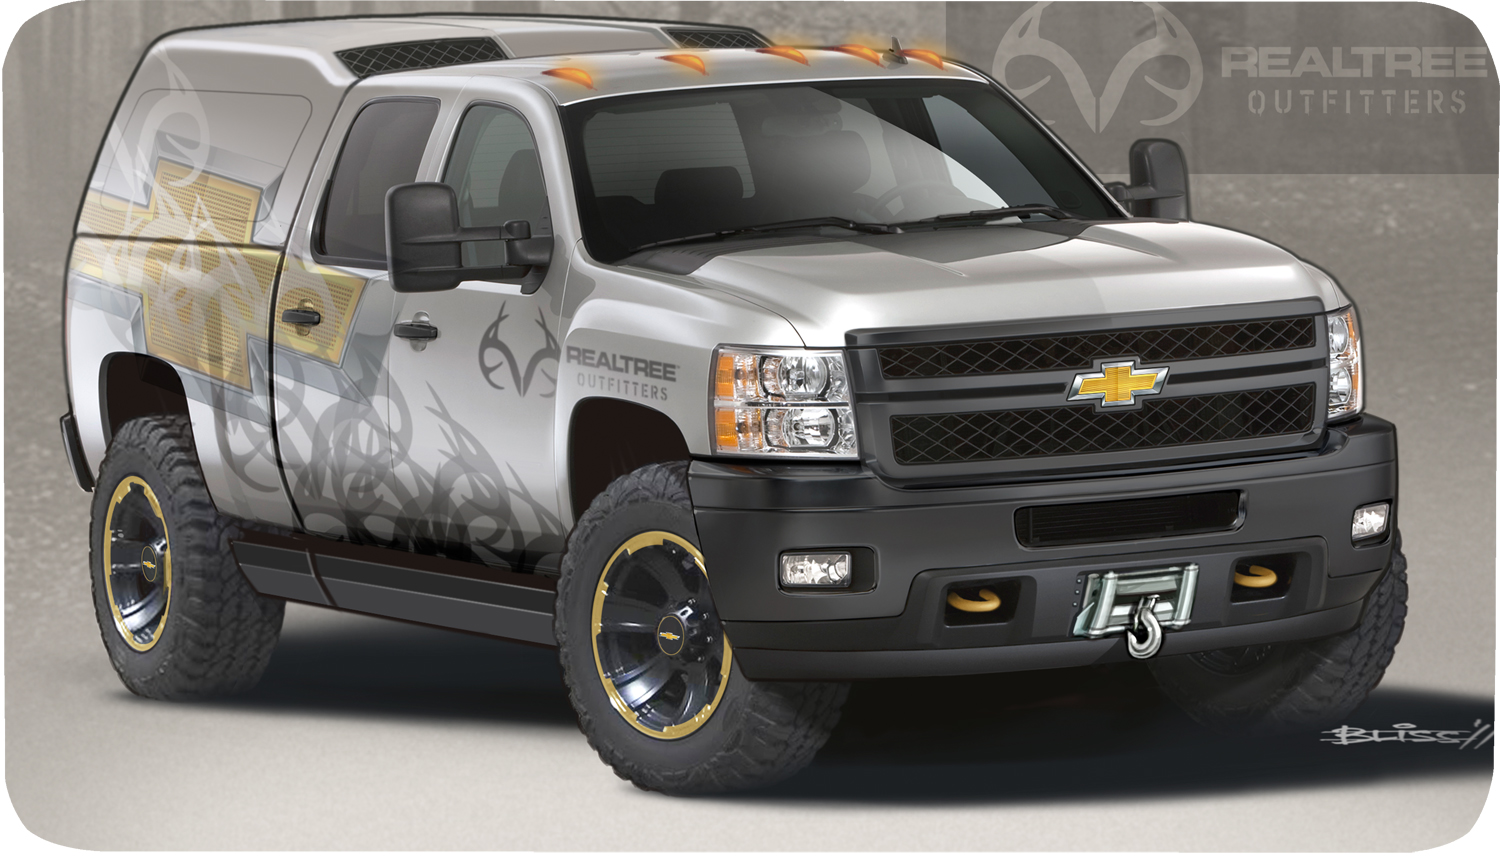 The 2012 Chevy Silverado 2500 Hd Realtree Concept Image Gm